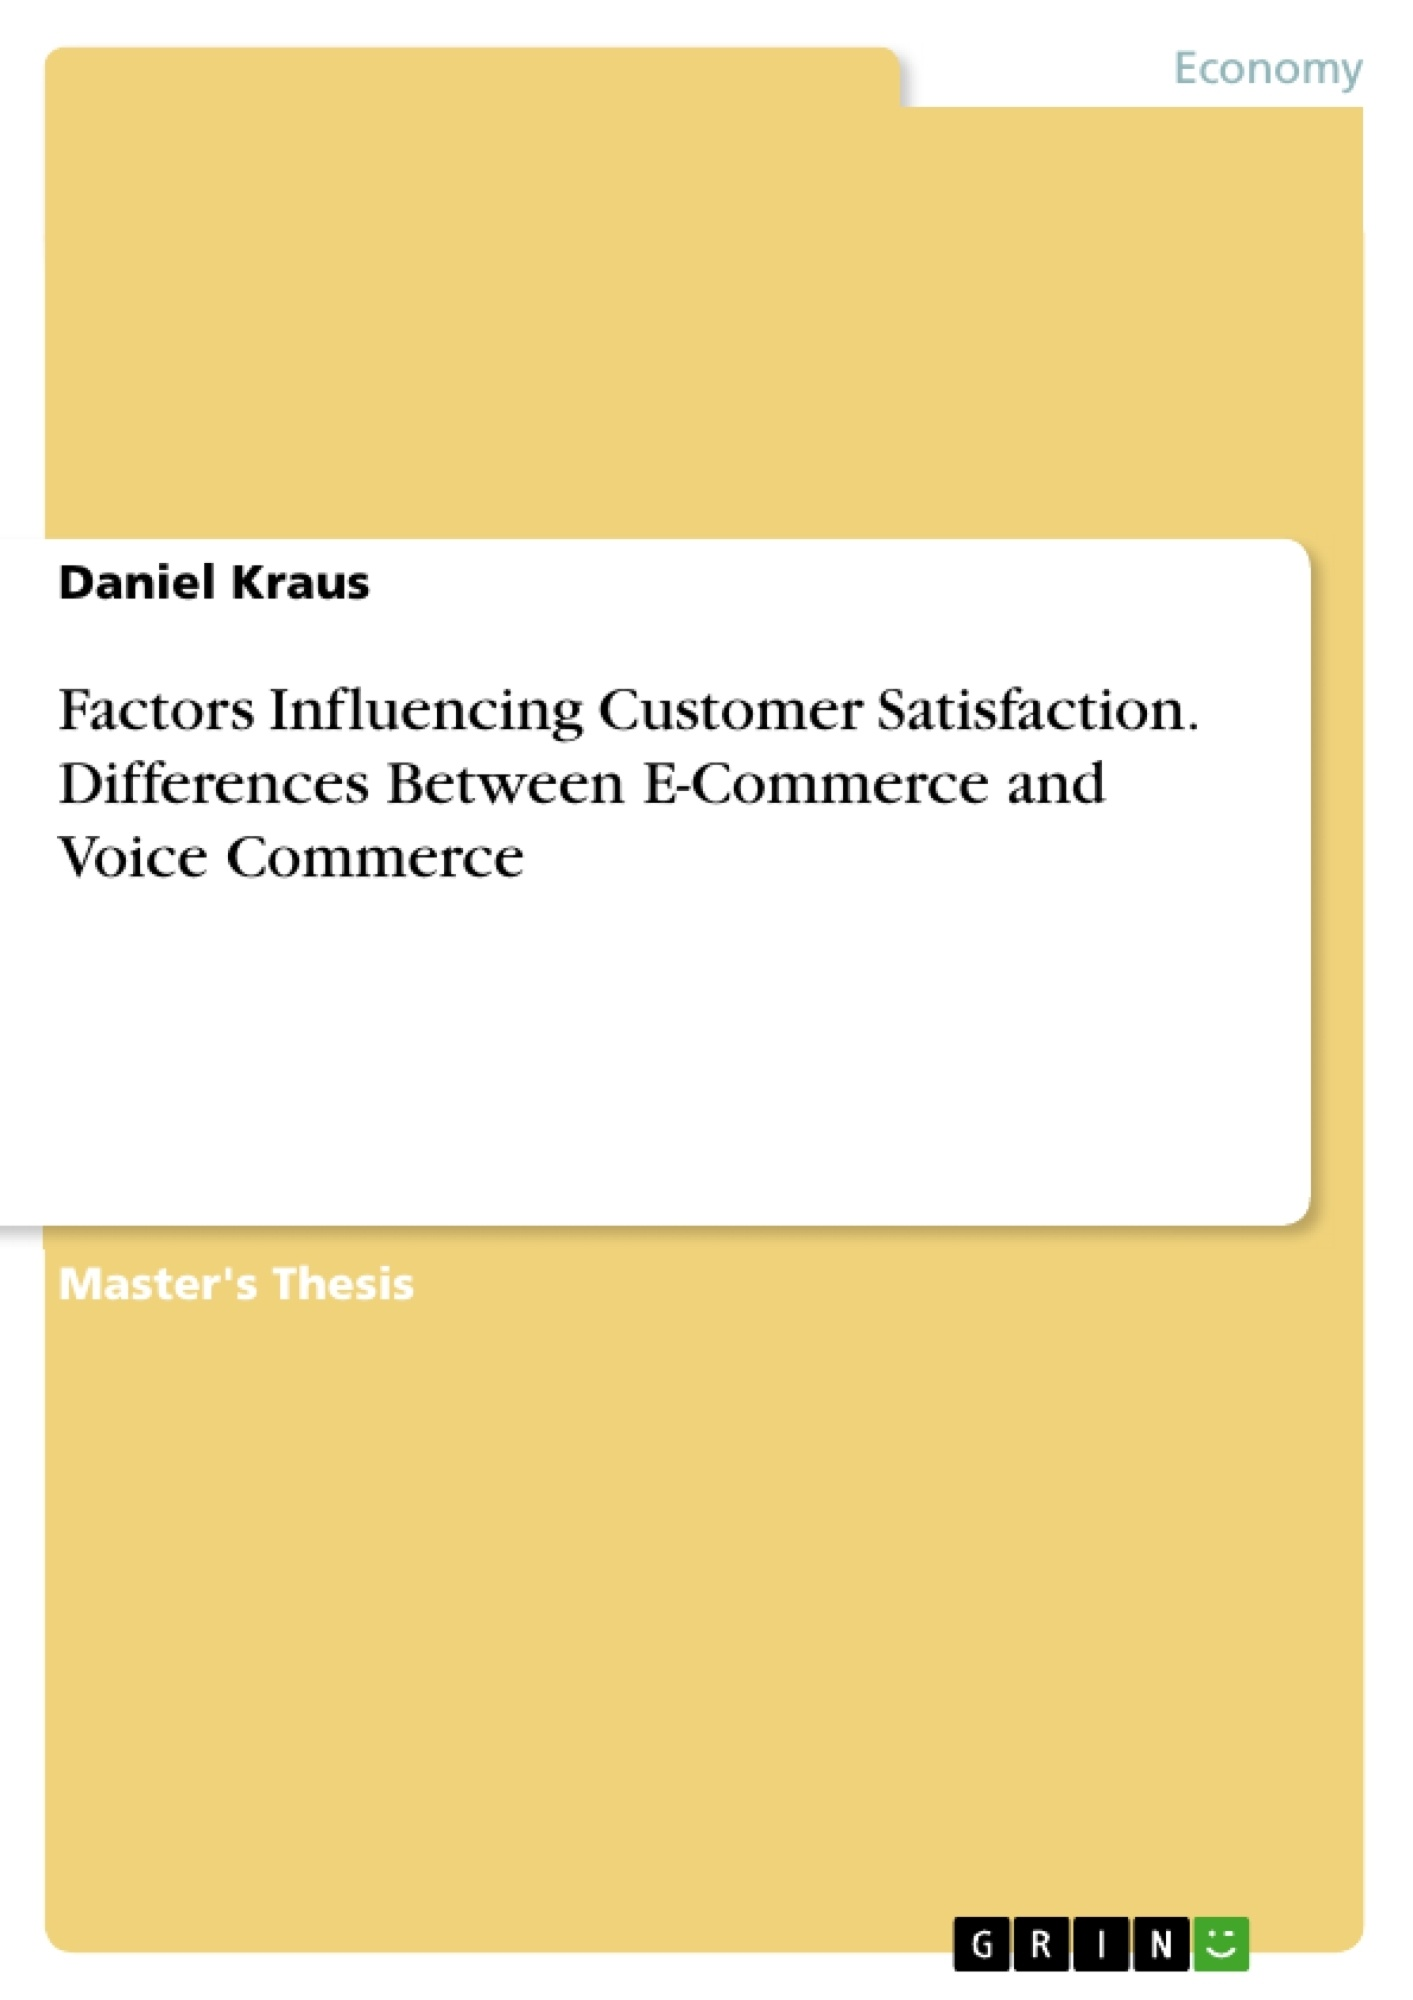 Title: Factors Influencing Customer Satisfaction. Differences Between E-Commerce and Voice Commerce